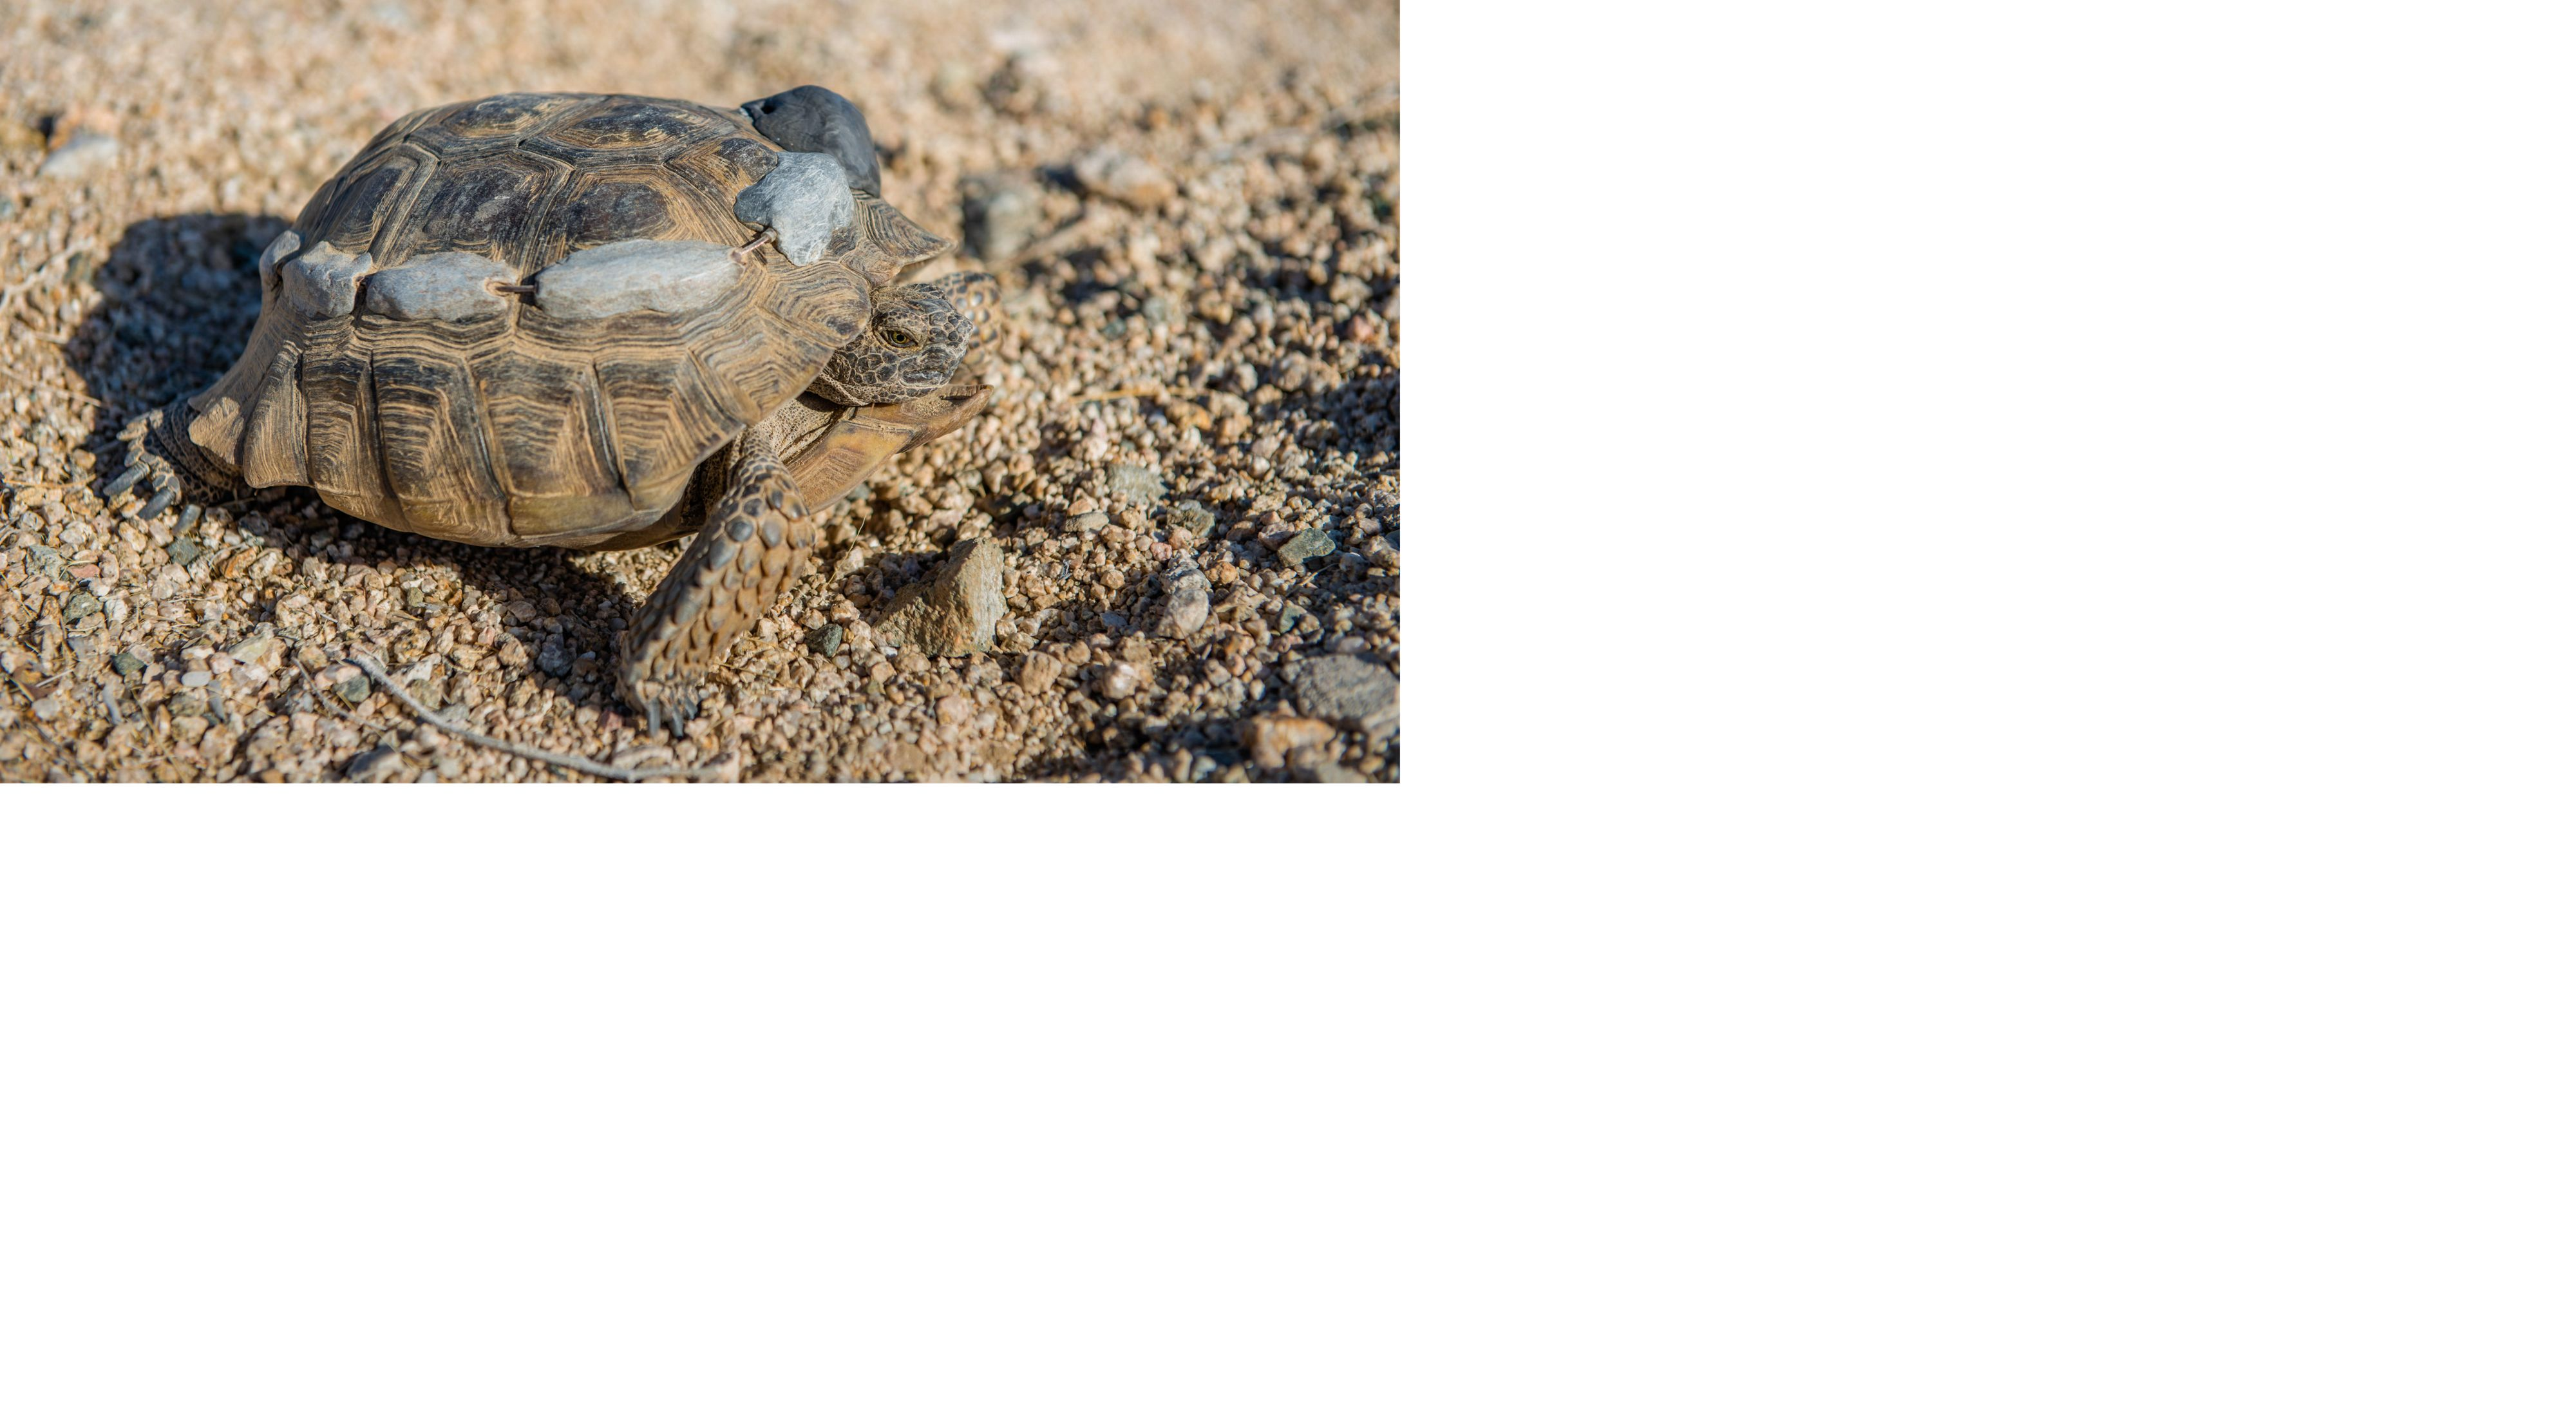 a brown tortoise with grey transmitters on its shell as it walks on the sand.